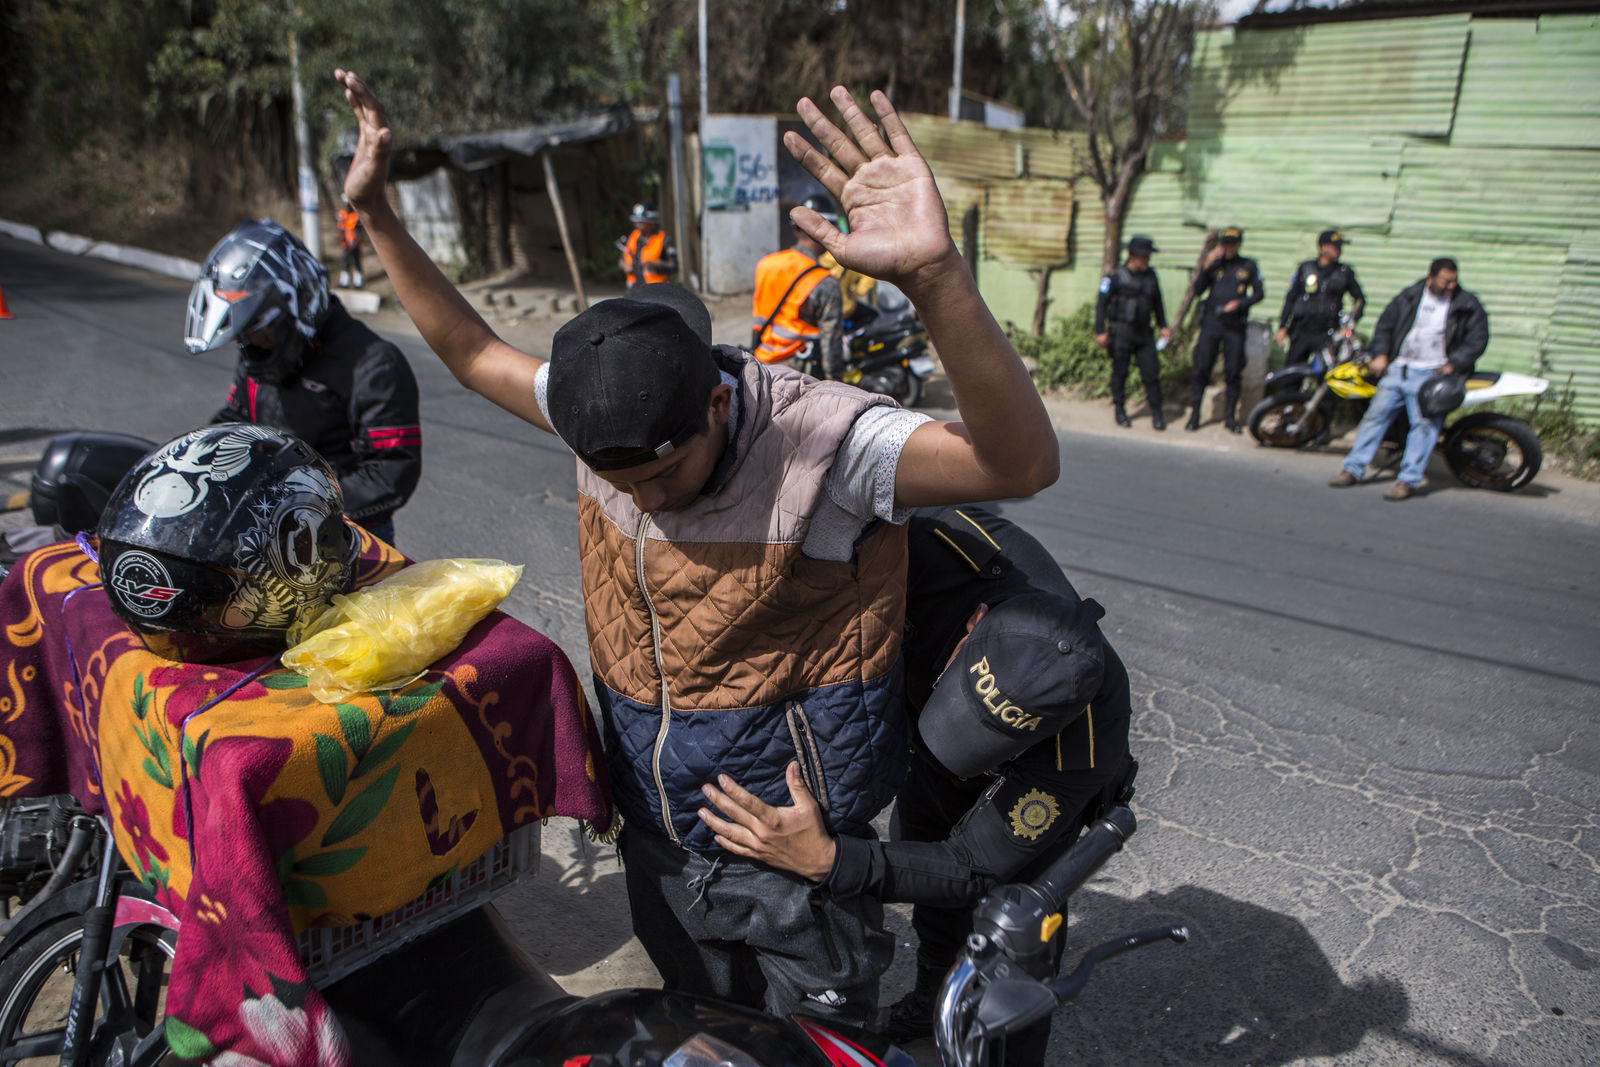 A police stops a motorcyclist to search him at a security checkpoint in the El Milagro area of the Mixco municipality on the outskirts of Guatemala City, Friday, Jan. 17, 2020.{ } (AP Photo/Oliver de Ros)